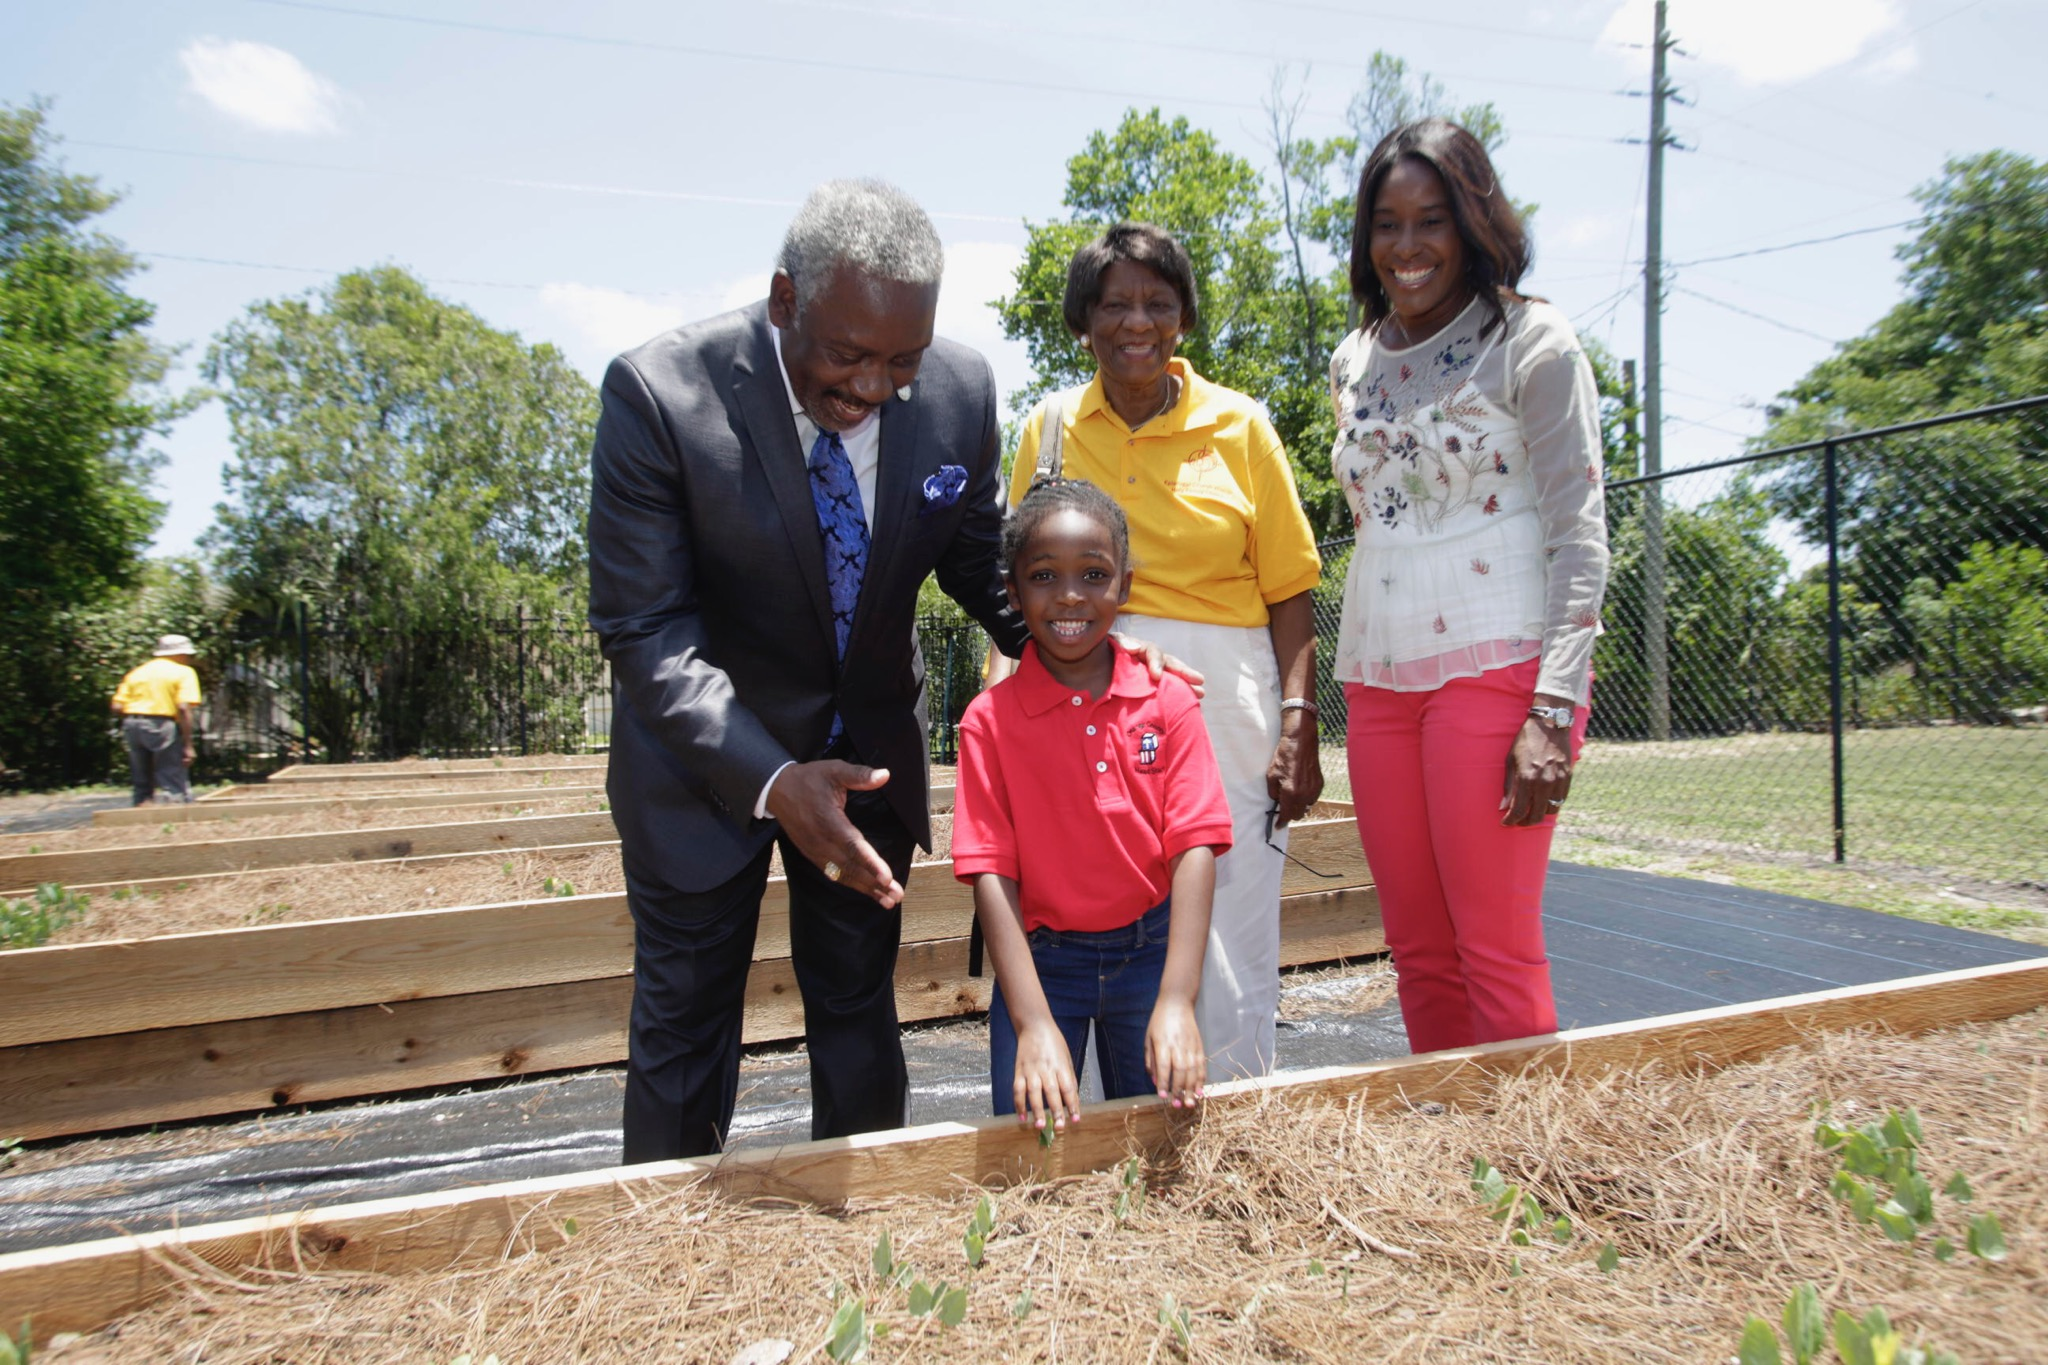 Mayor Demings and a child at a community garden